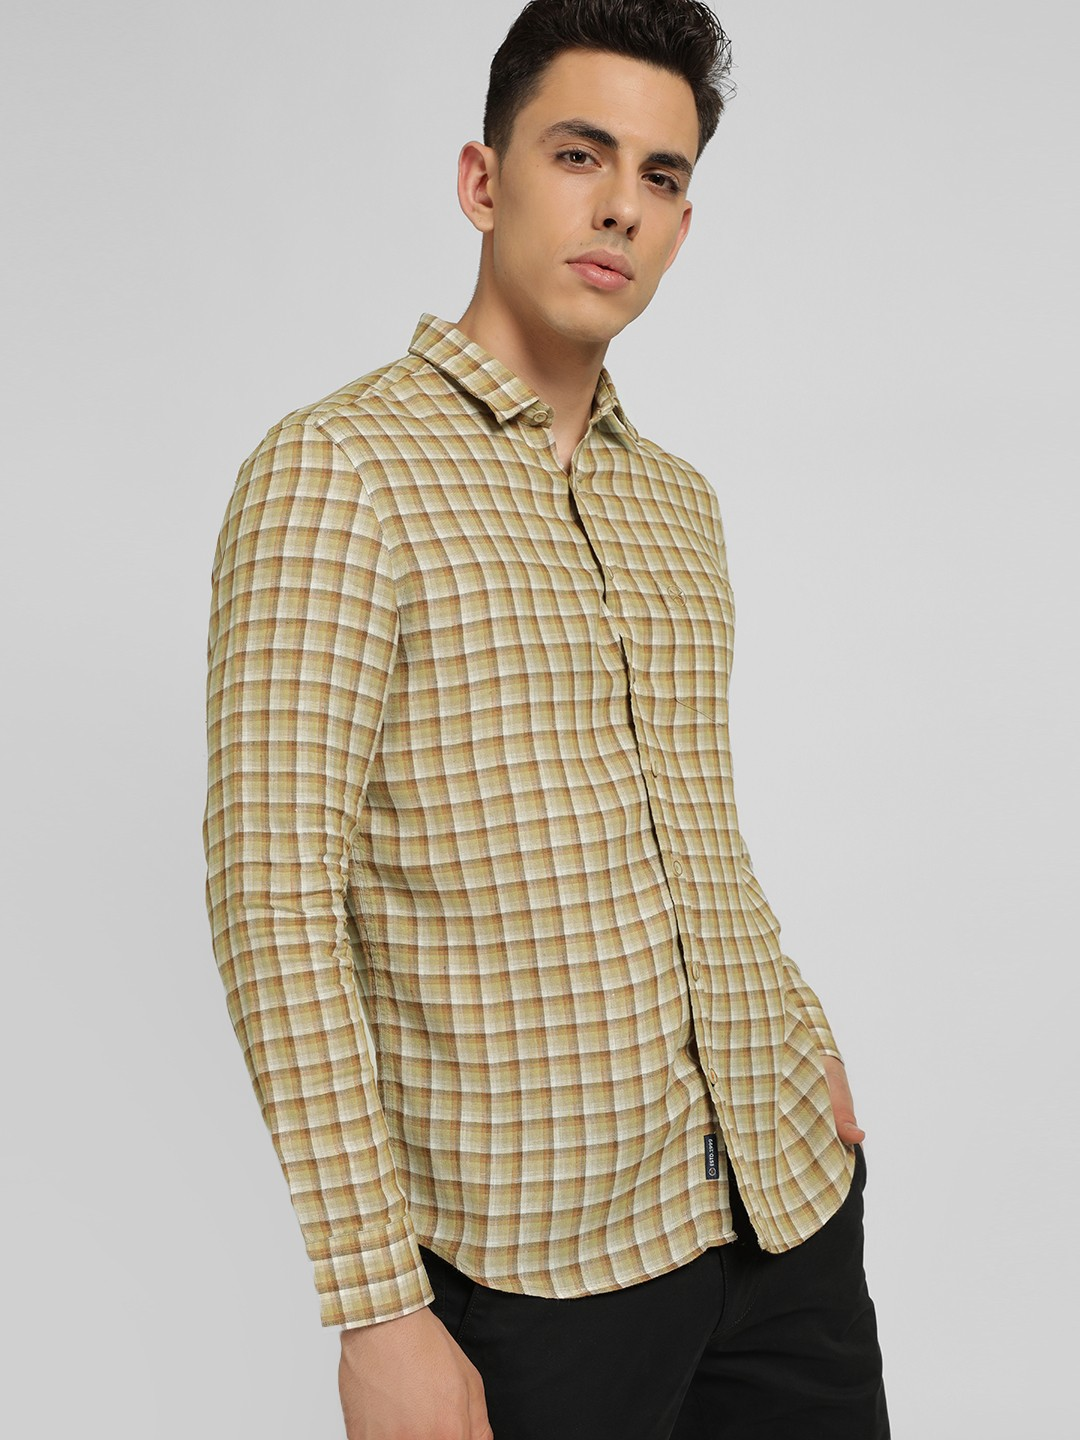 SCULLERS Brown Multi-Check Slim Shirt 1